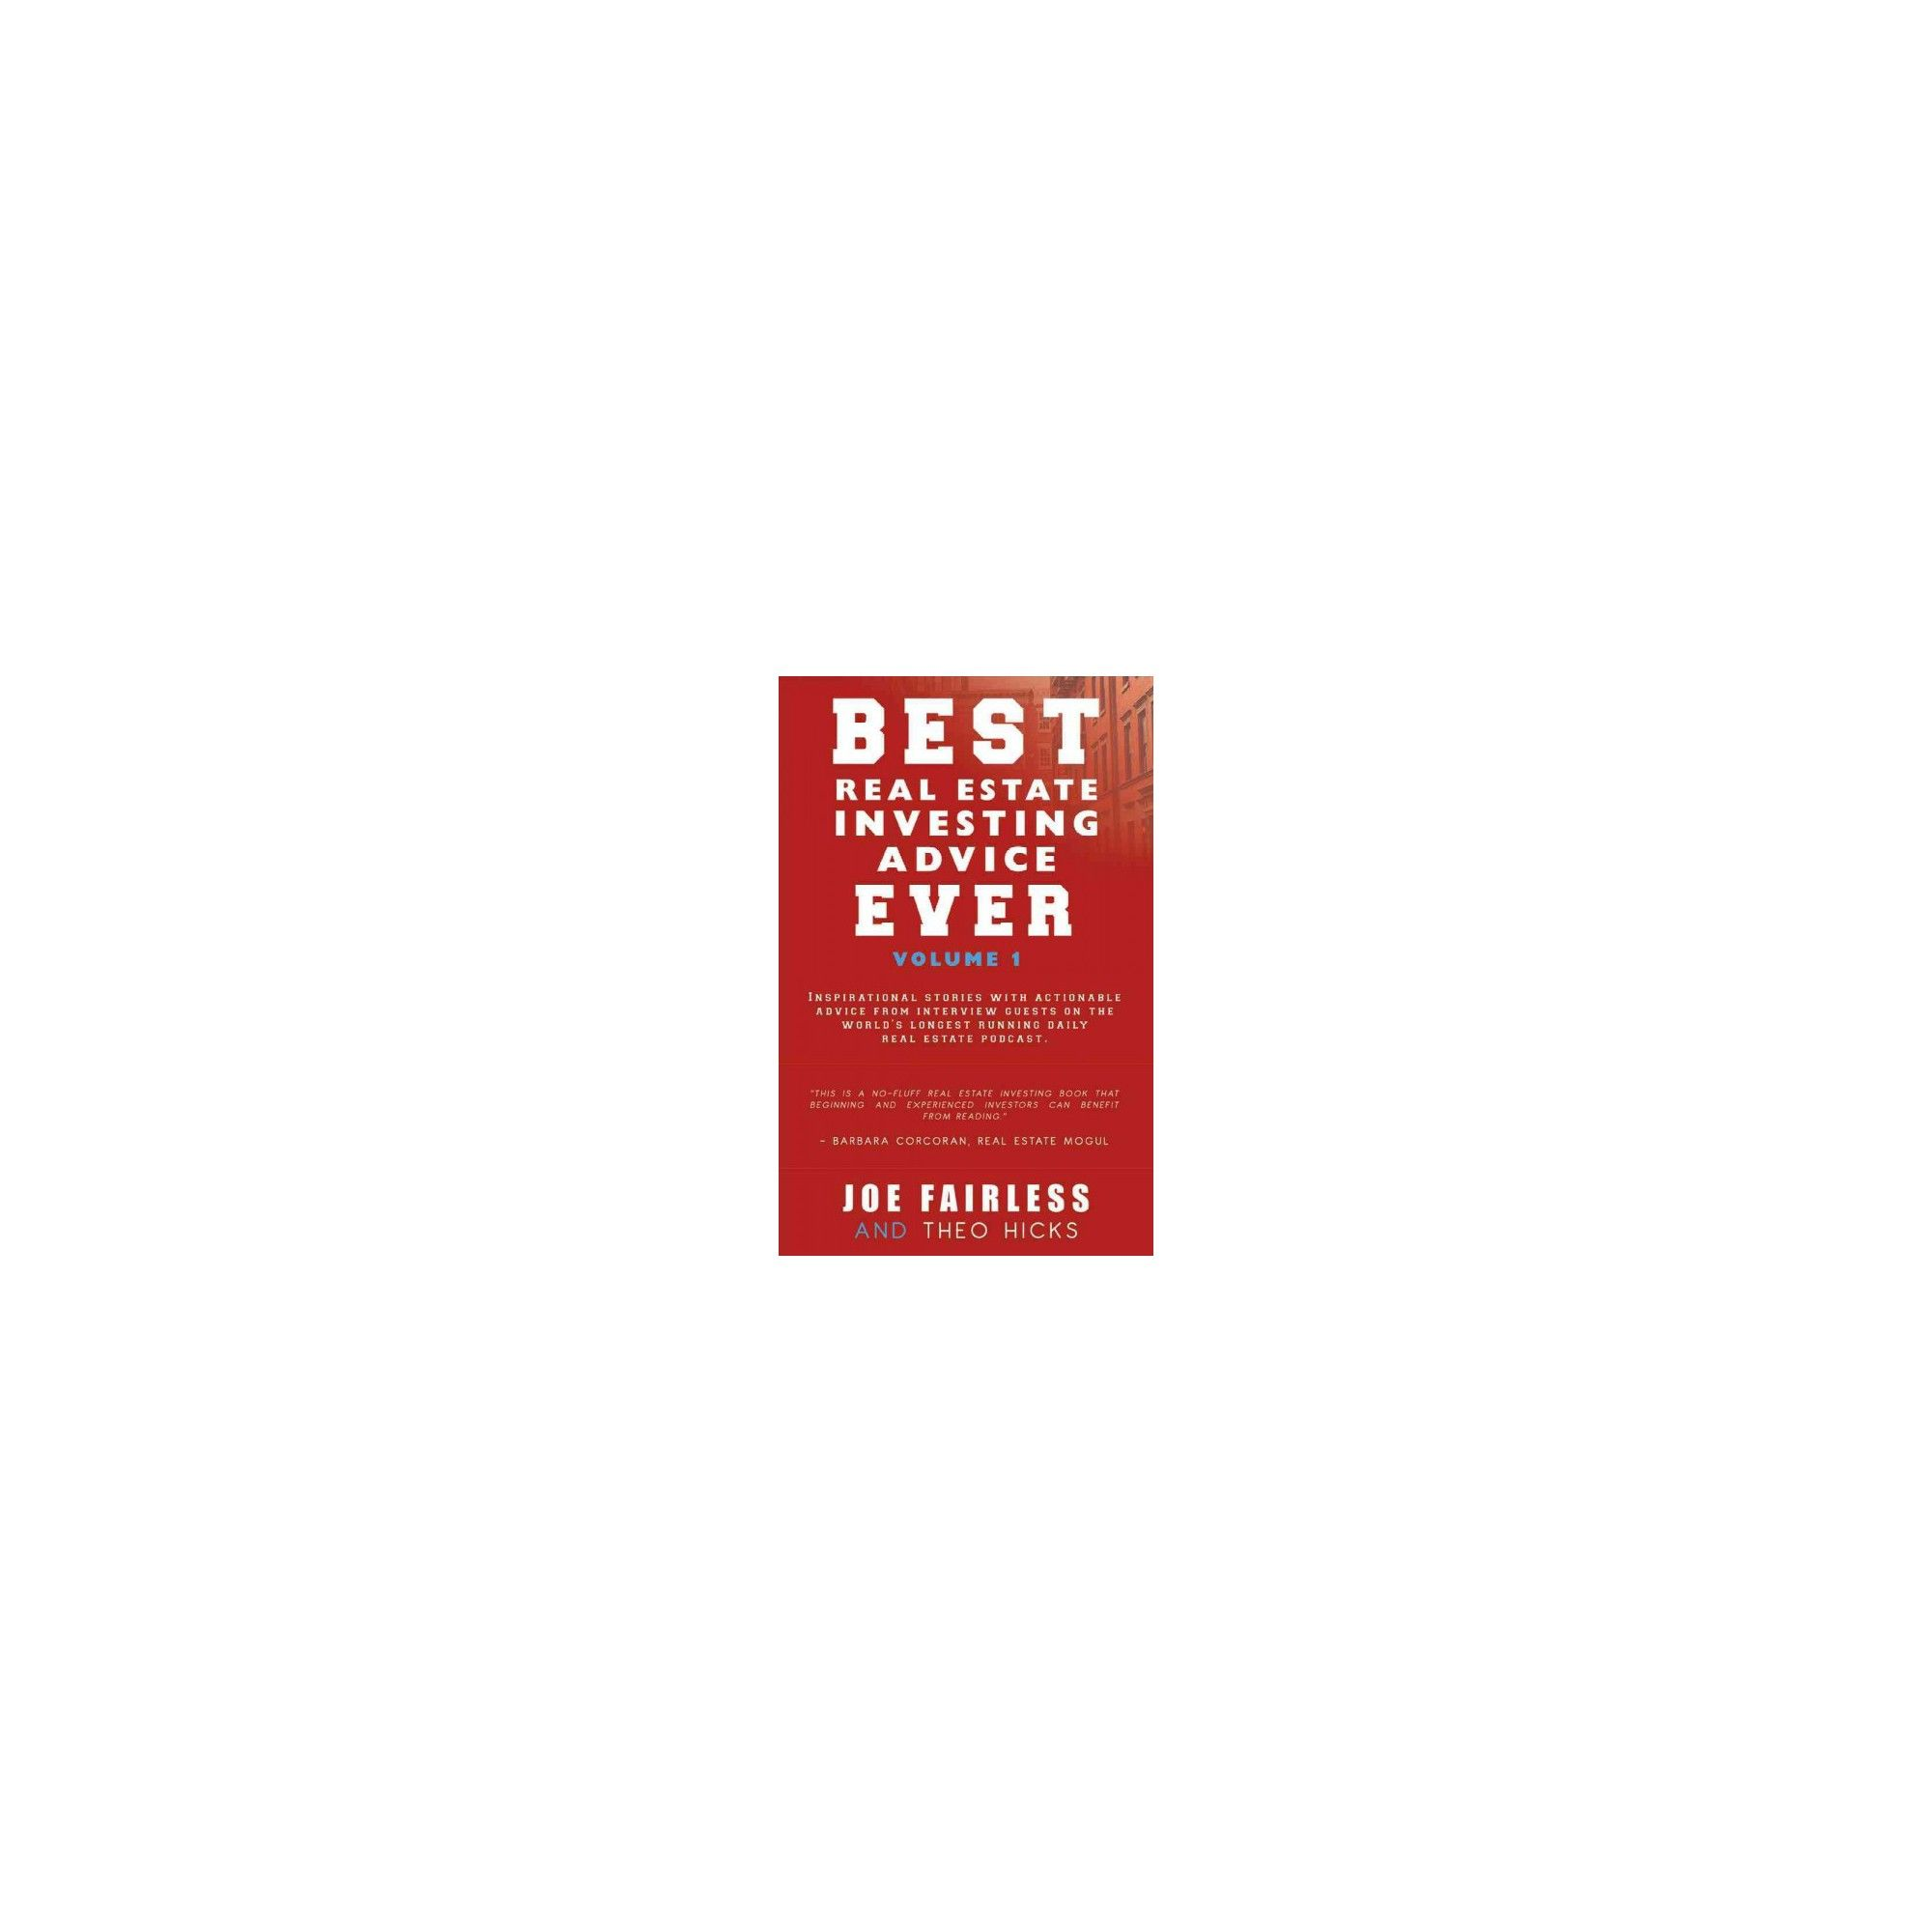 Best Real Estate Investing Advice Ever (Vol 1) (Paperback) (Joe Fairless &  Theo Hicks)